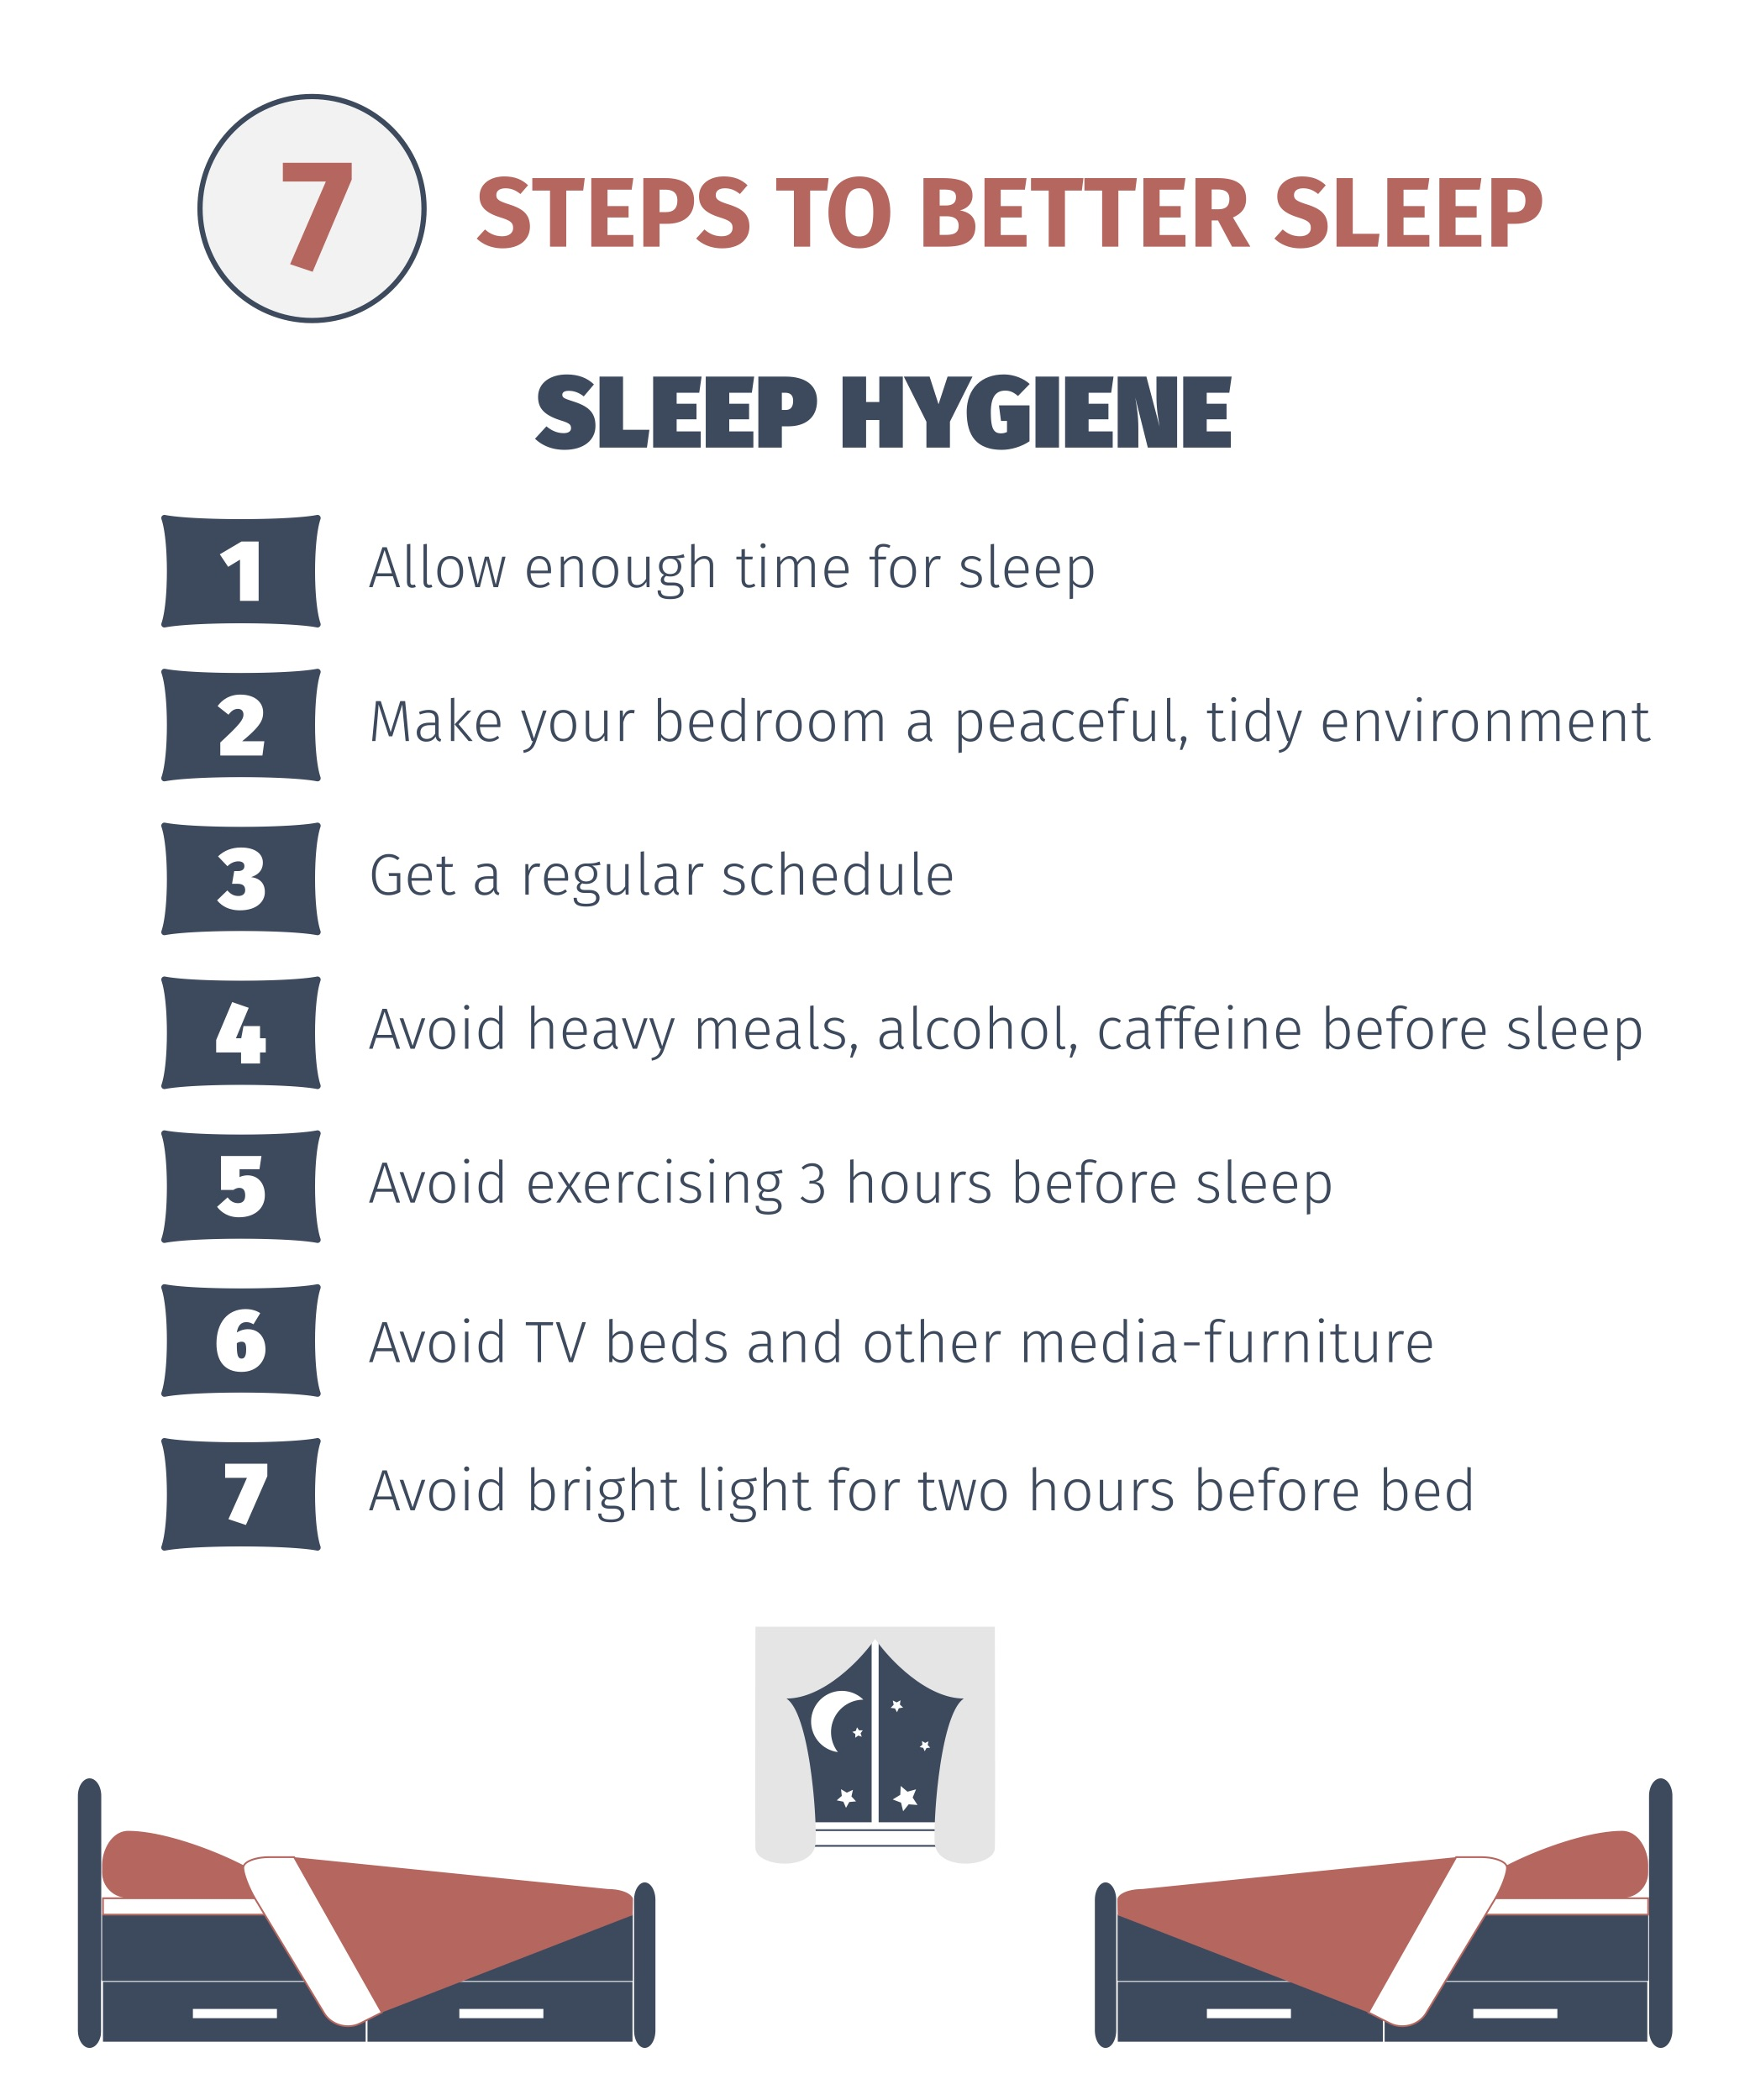 List of steps for better sleep hygiene and healthy sleep, allowing enough time to sleep, making bedroom tidy, regular schedule, avoiding heavy meals, alcohol, caffeine, exercising more than 3 hours before bed, avoiding bright light and tv before bed